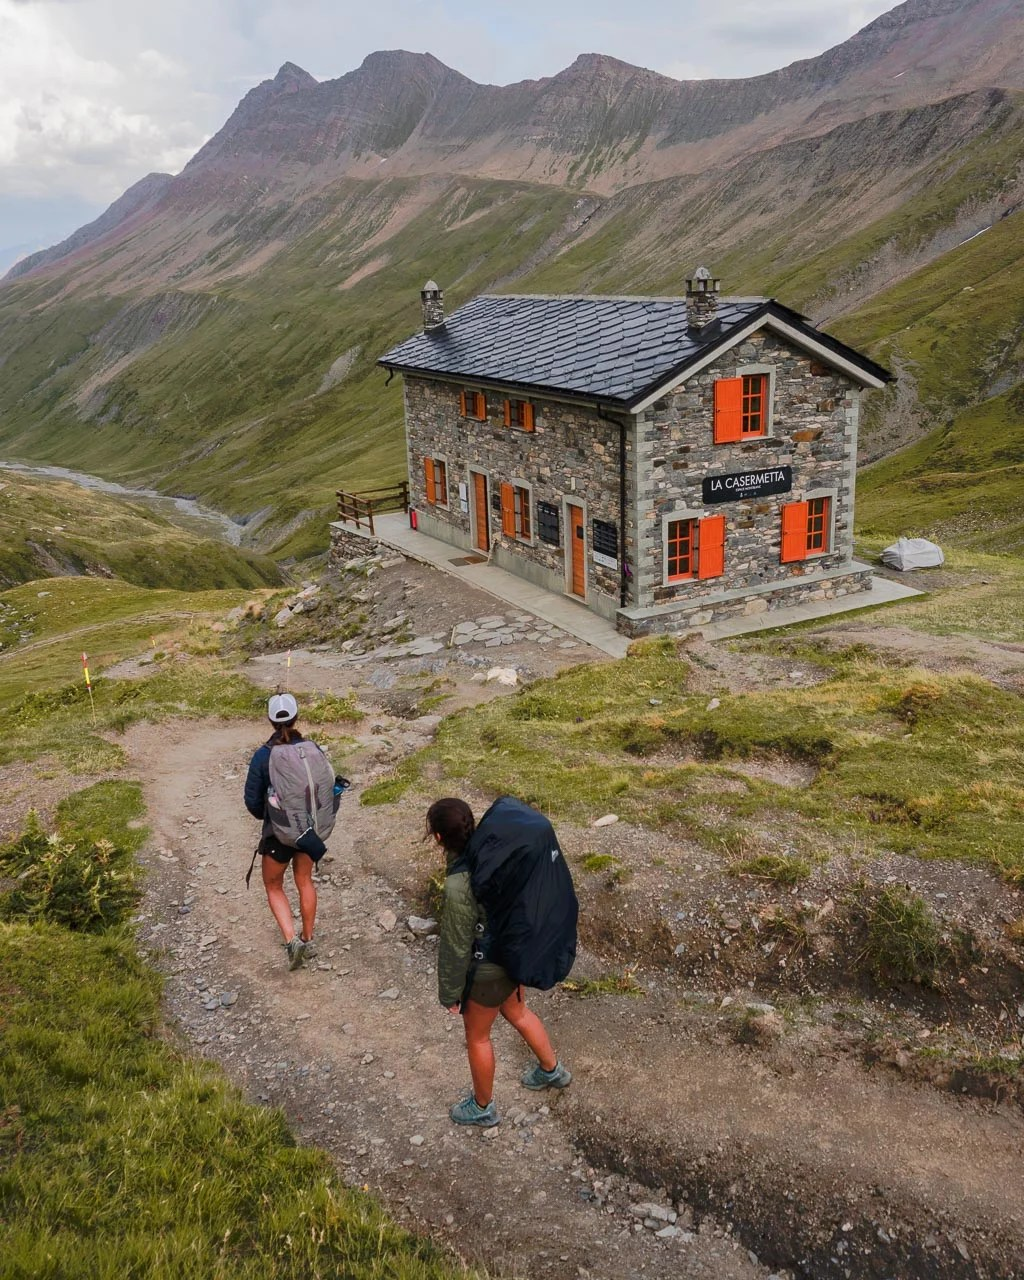 stage 3 of Tour du Mont Blanc to Refuge Elisabetta